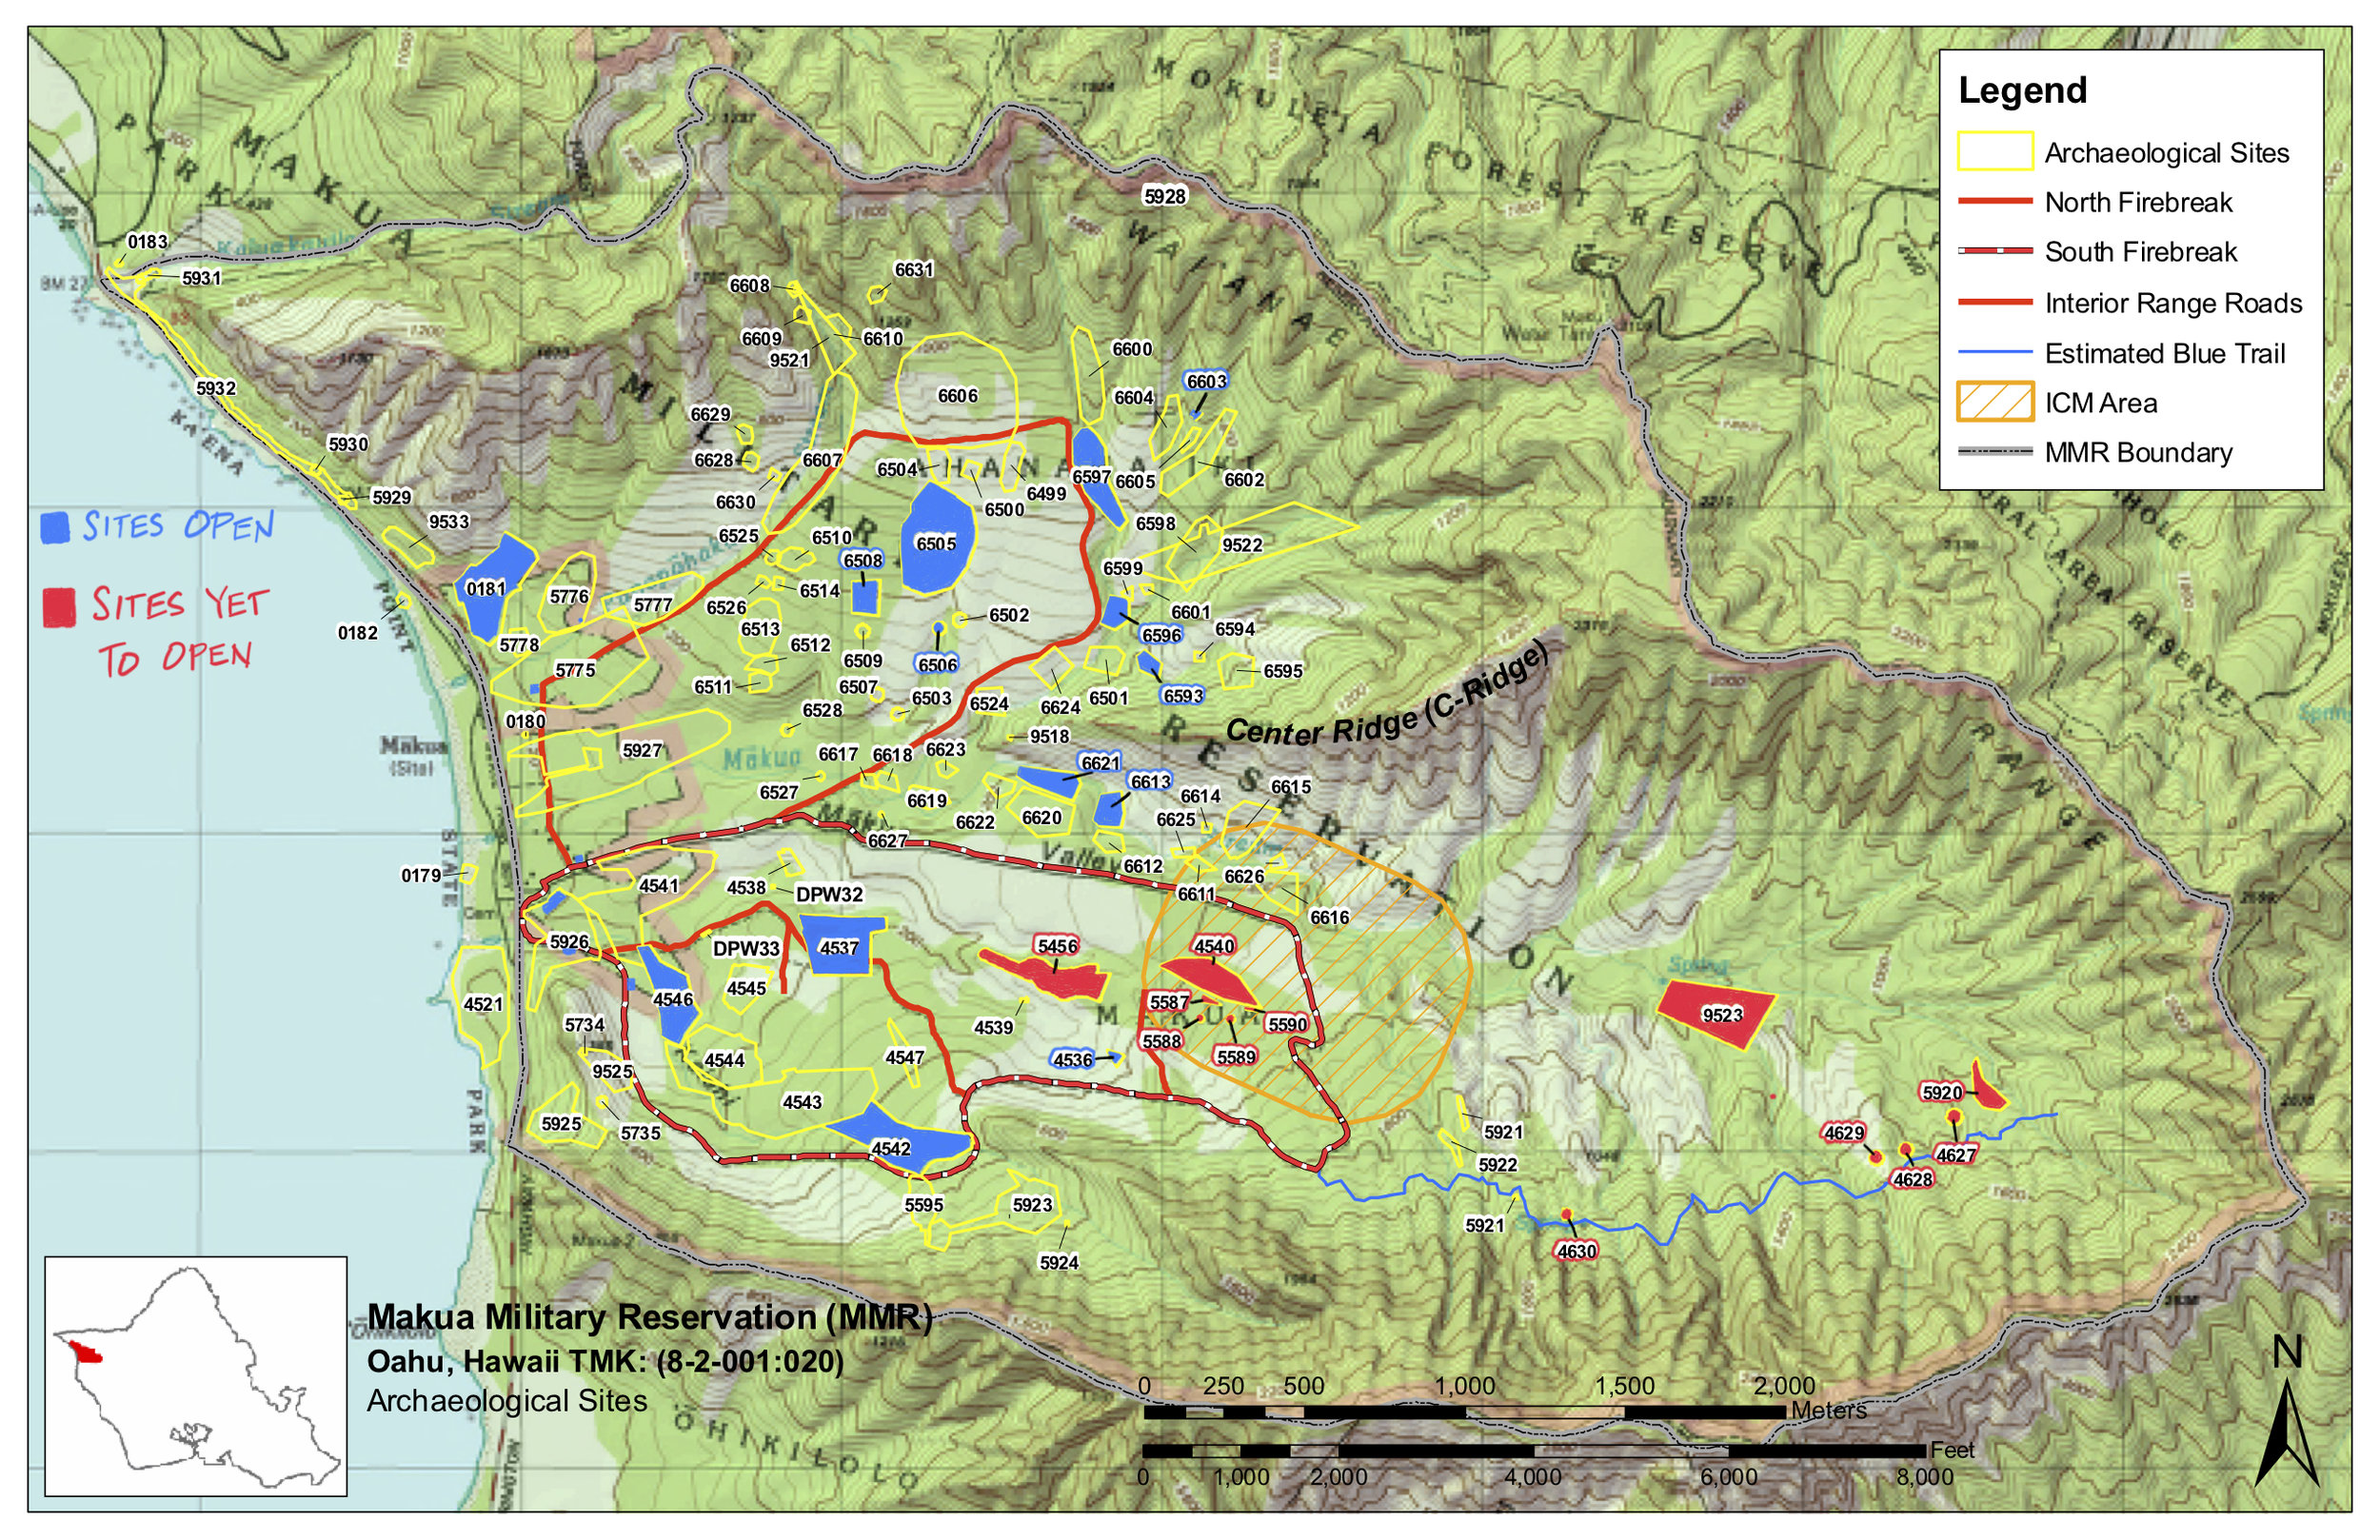 Mākua map sites opened - yet to open UPDATED.jpg